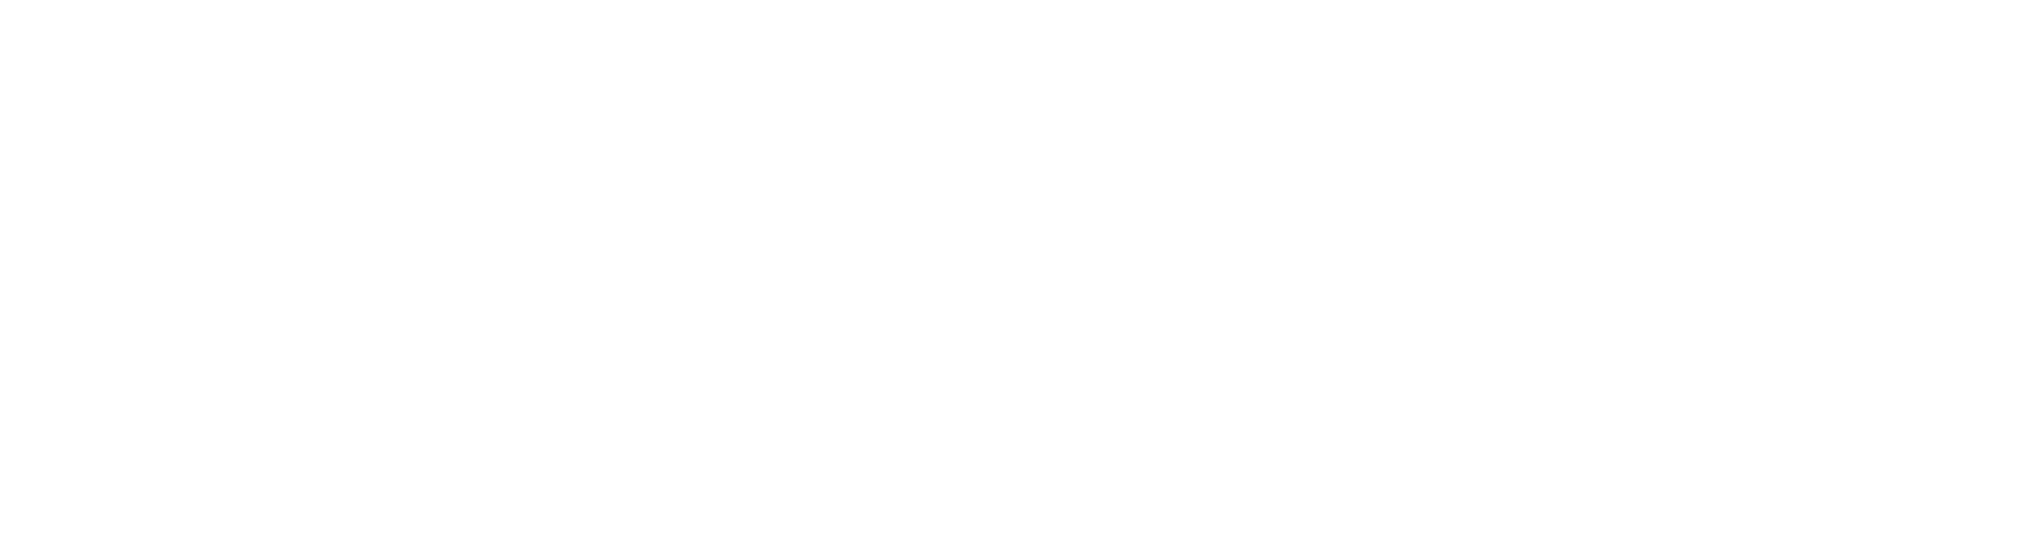 Couch to 5k Challenge